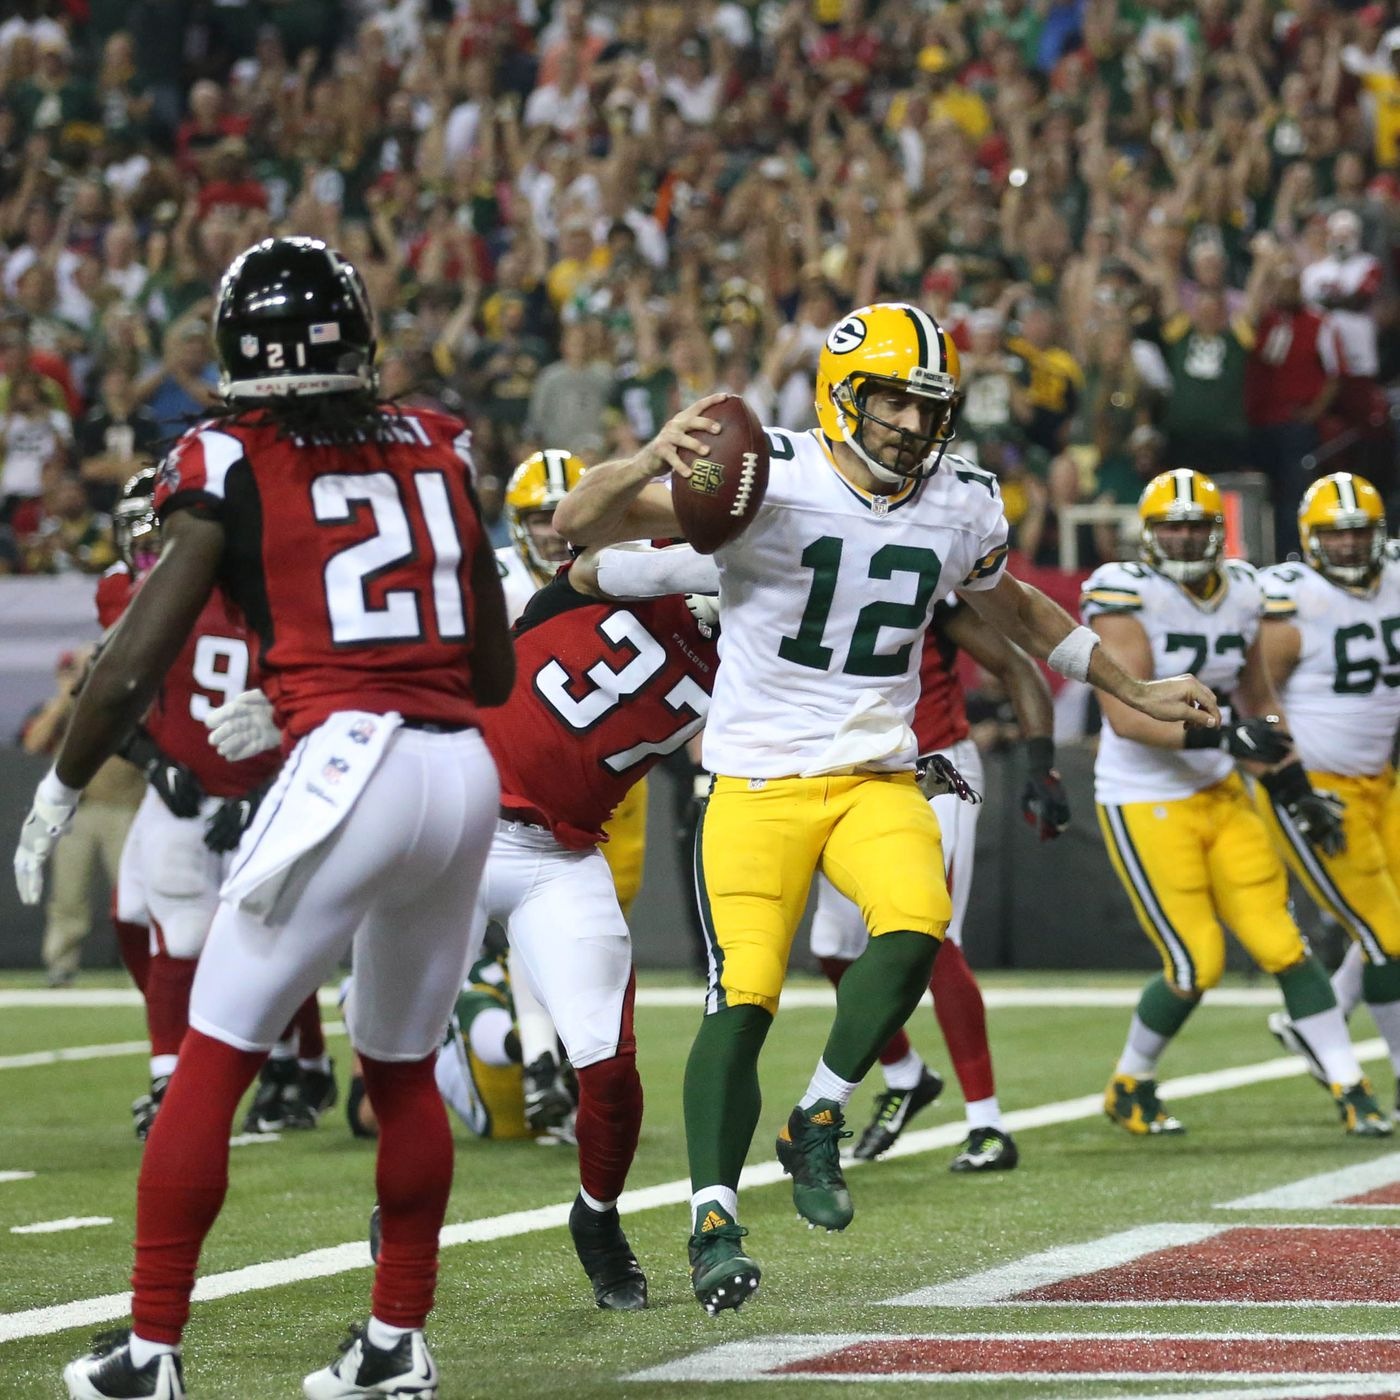 Nfc Championship Predictions Packers Can Pull Off A Close High Scoring Upset Over Falcons Acme Packing Company